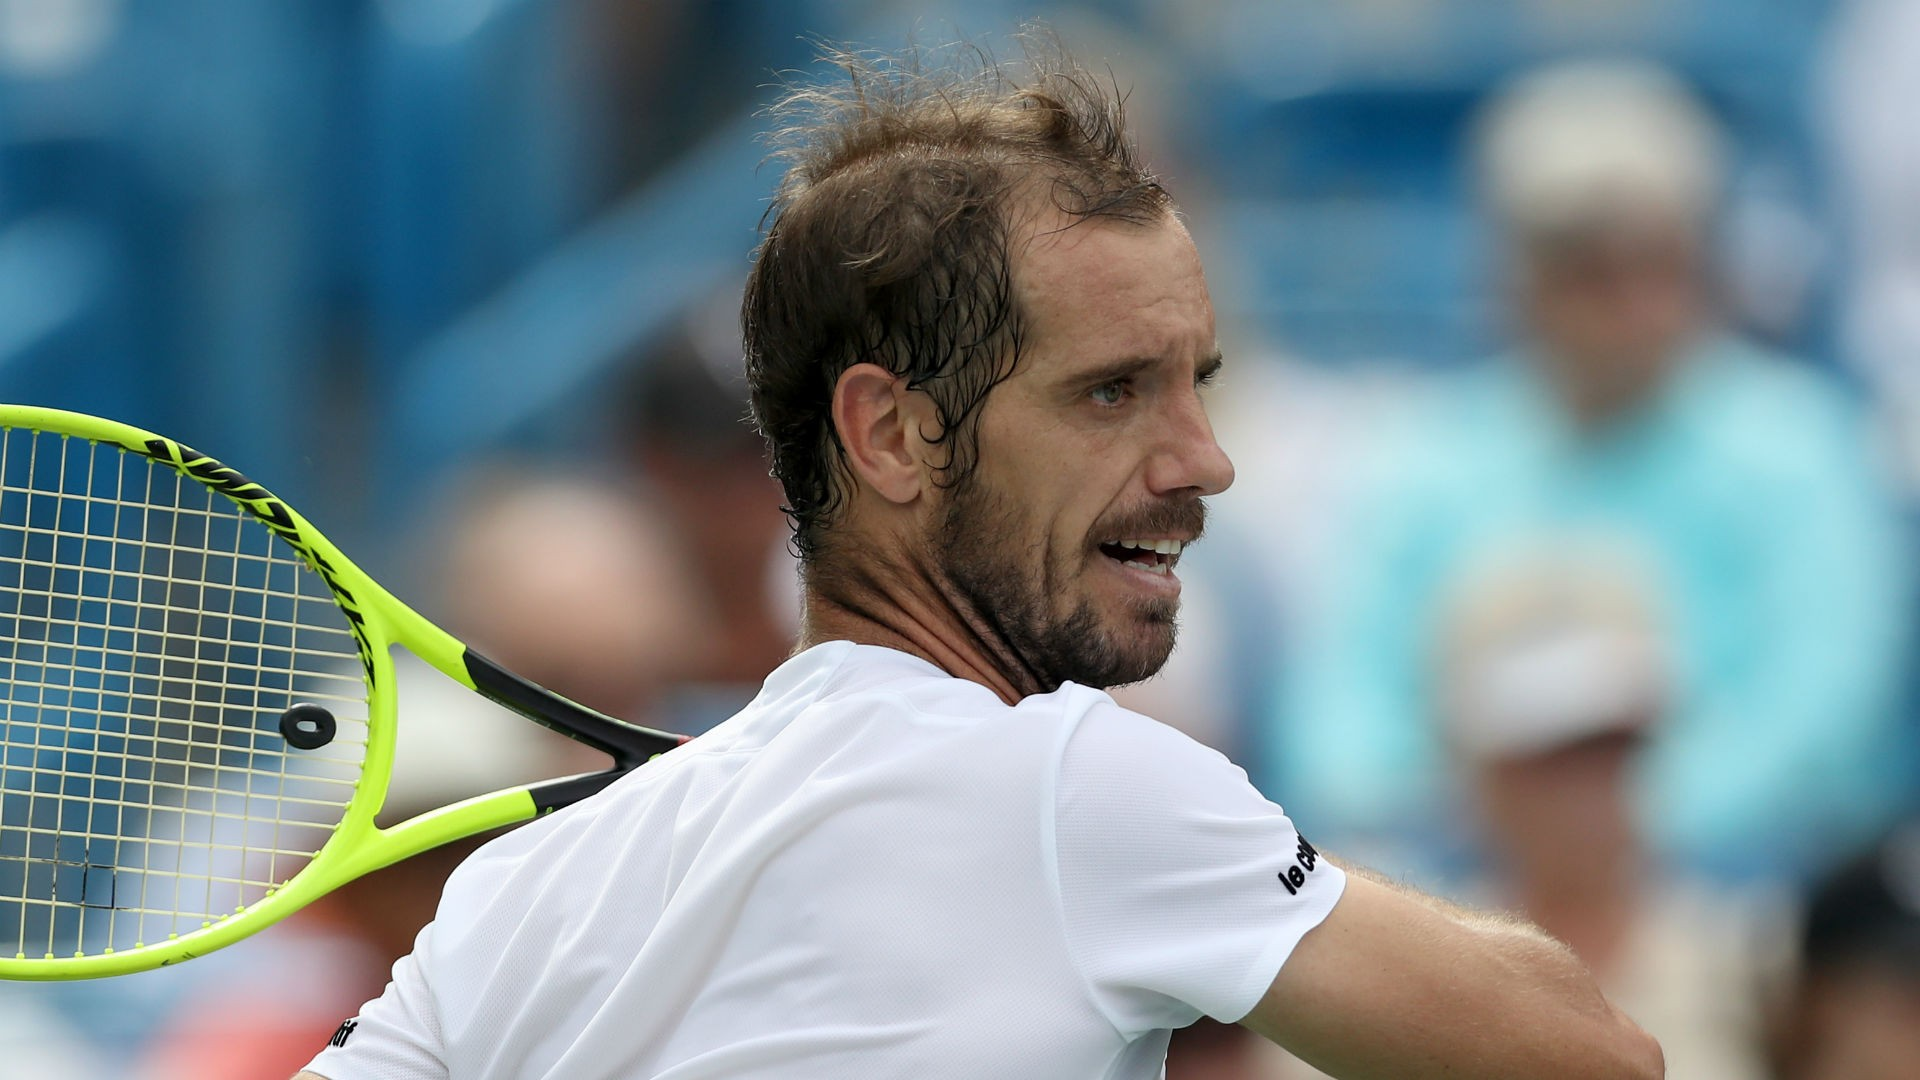 Richard Gasquet is one of the best French player in history